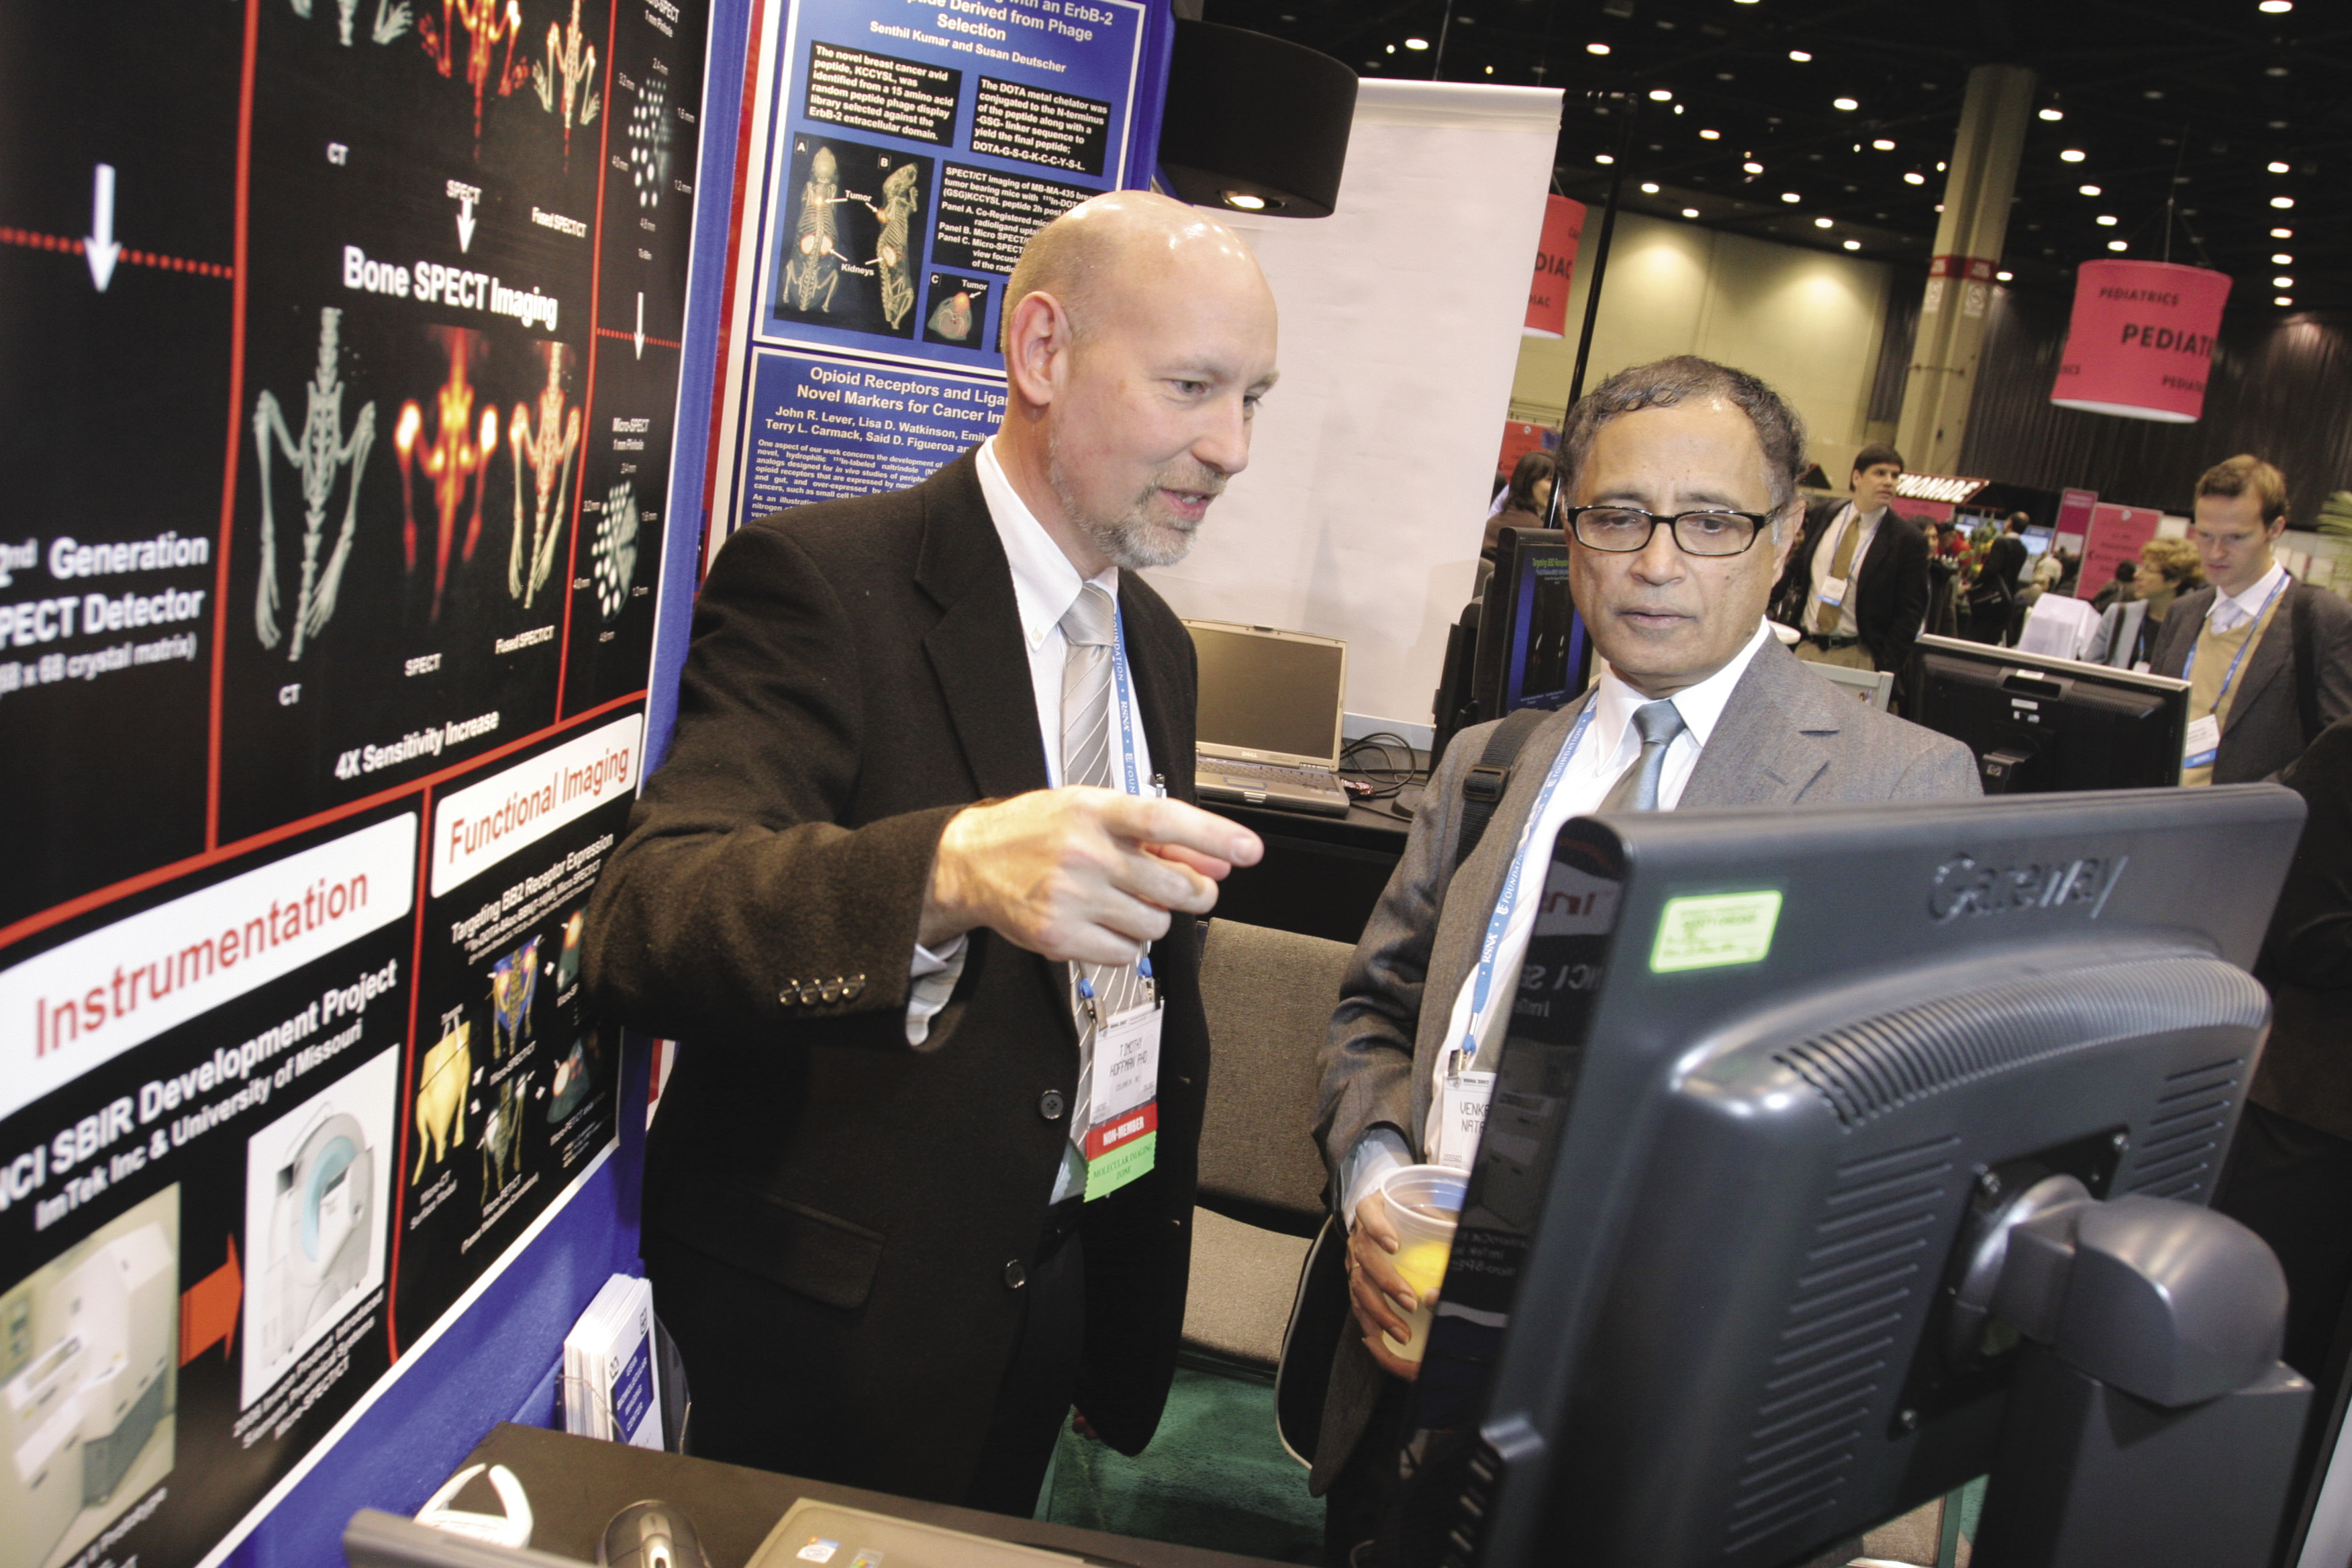 RSNA has pledged its support of multidisciplinary communication